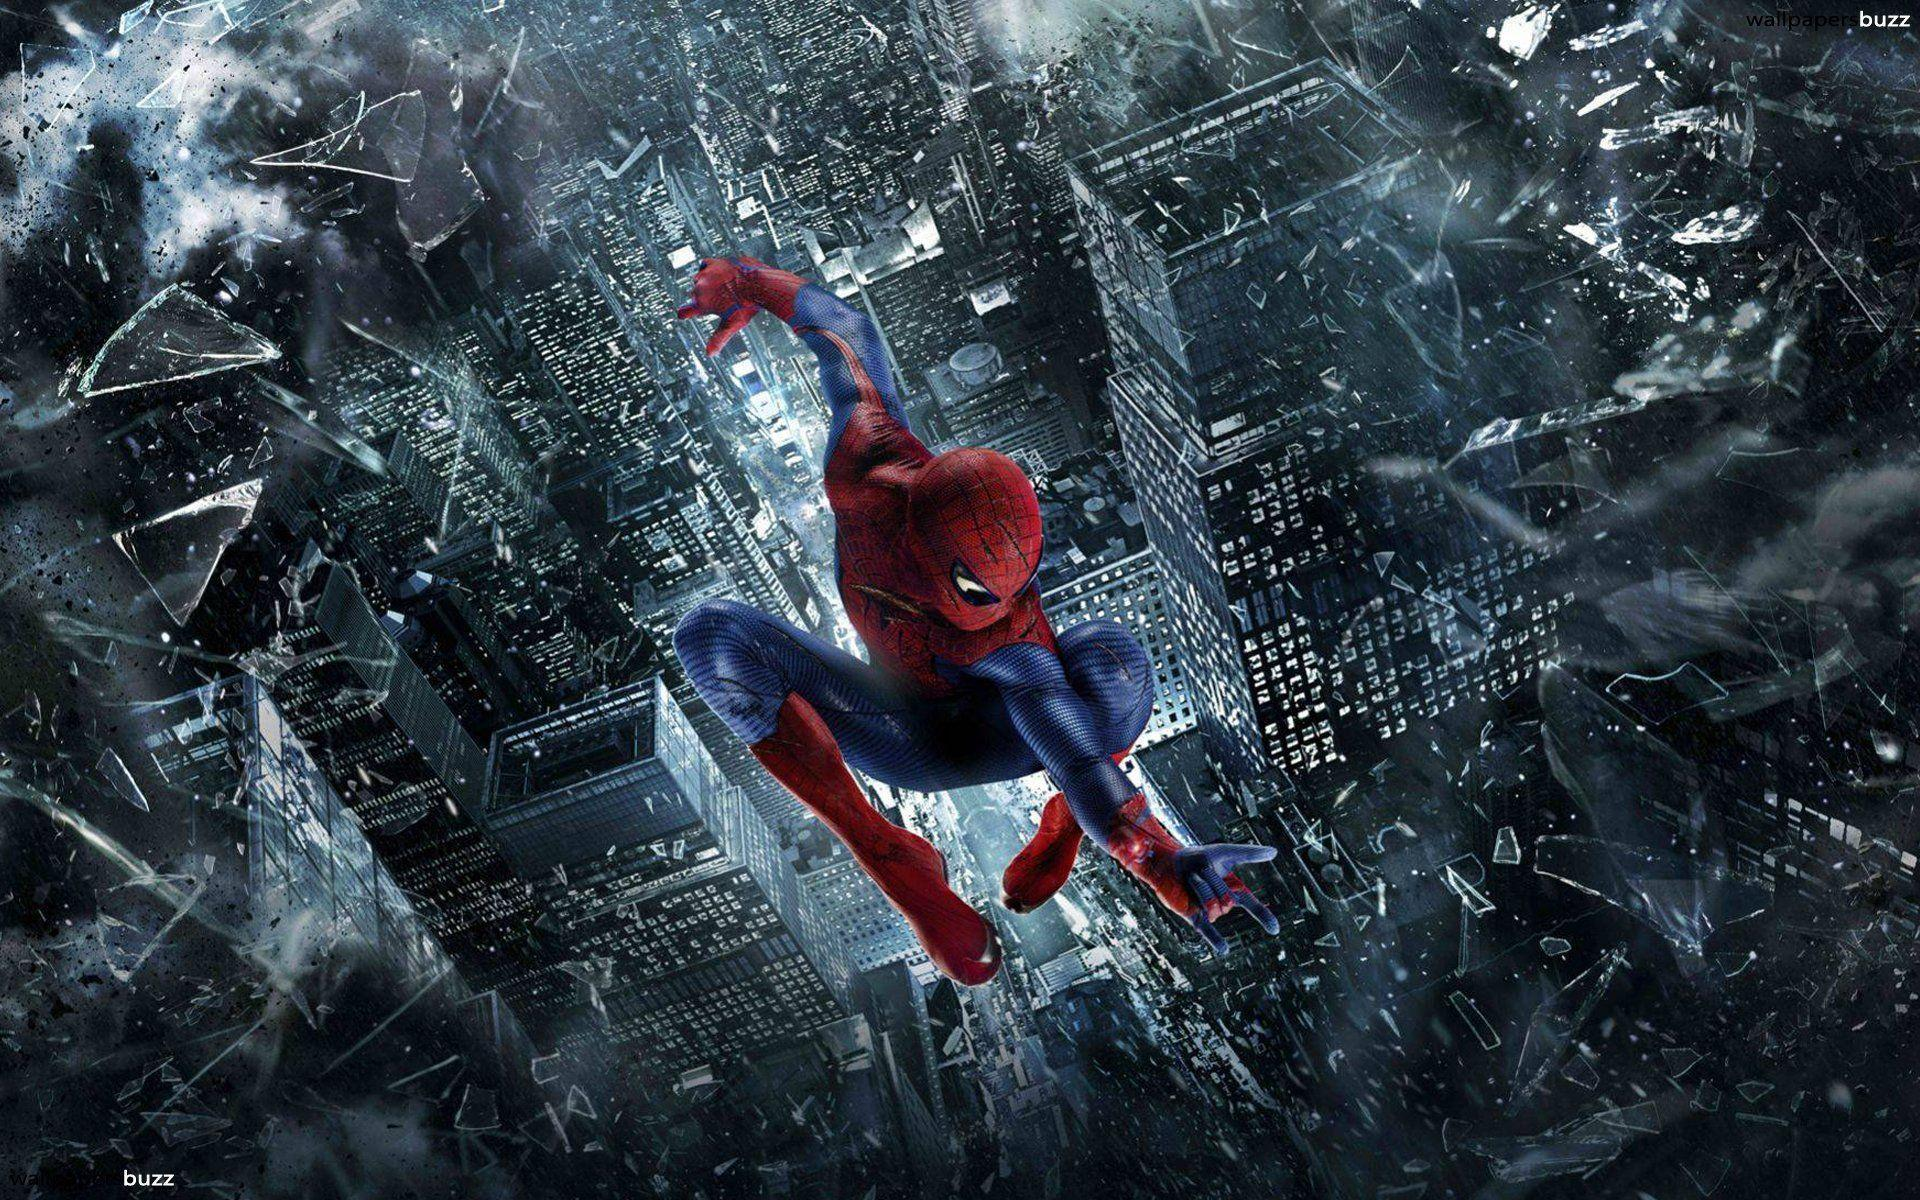 Spiderman 3 Hd Wallpapers 1080p: Spider-Man Wallpapers HD